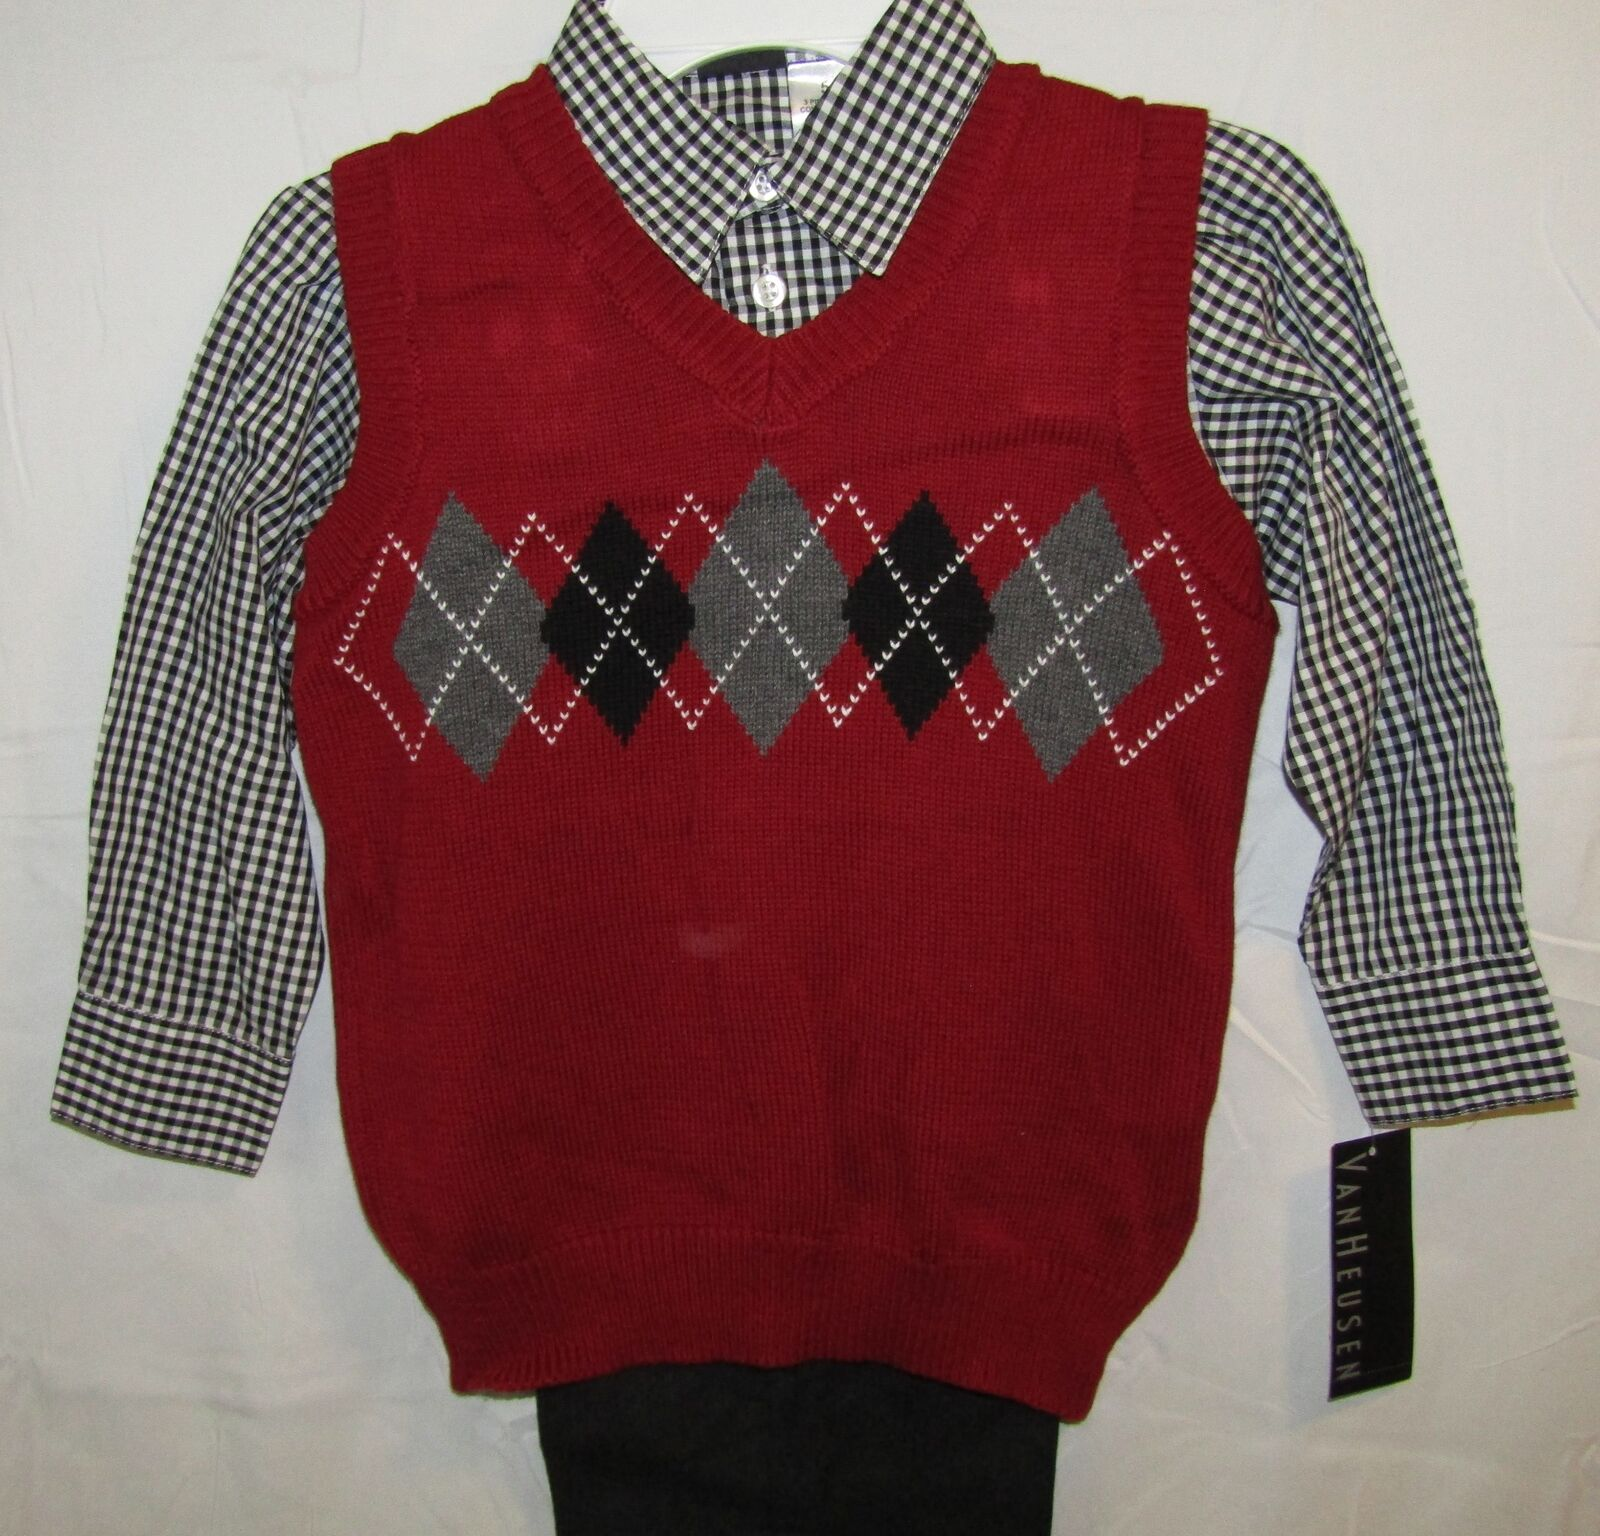 Van Heusen 3-piece Maroon Black and Gray Sweater Vest Set Boys ...